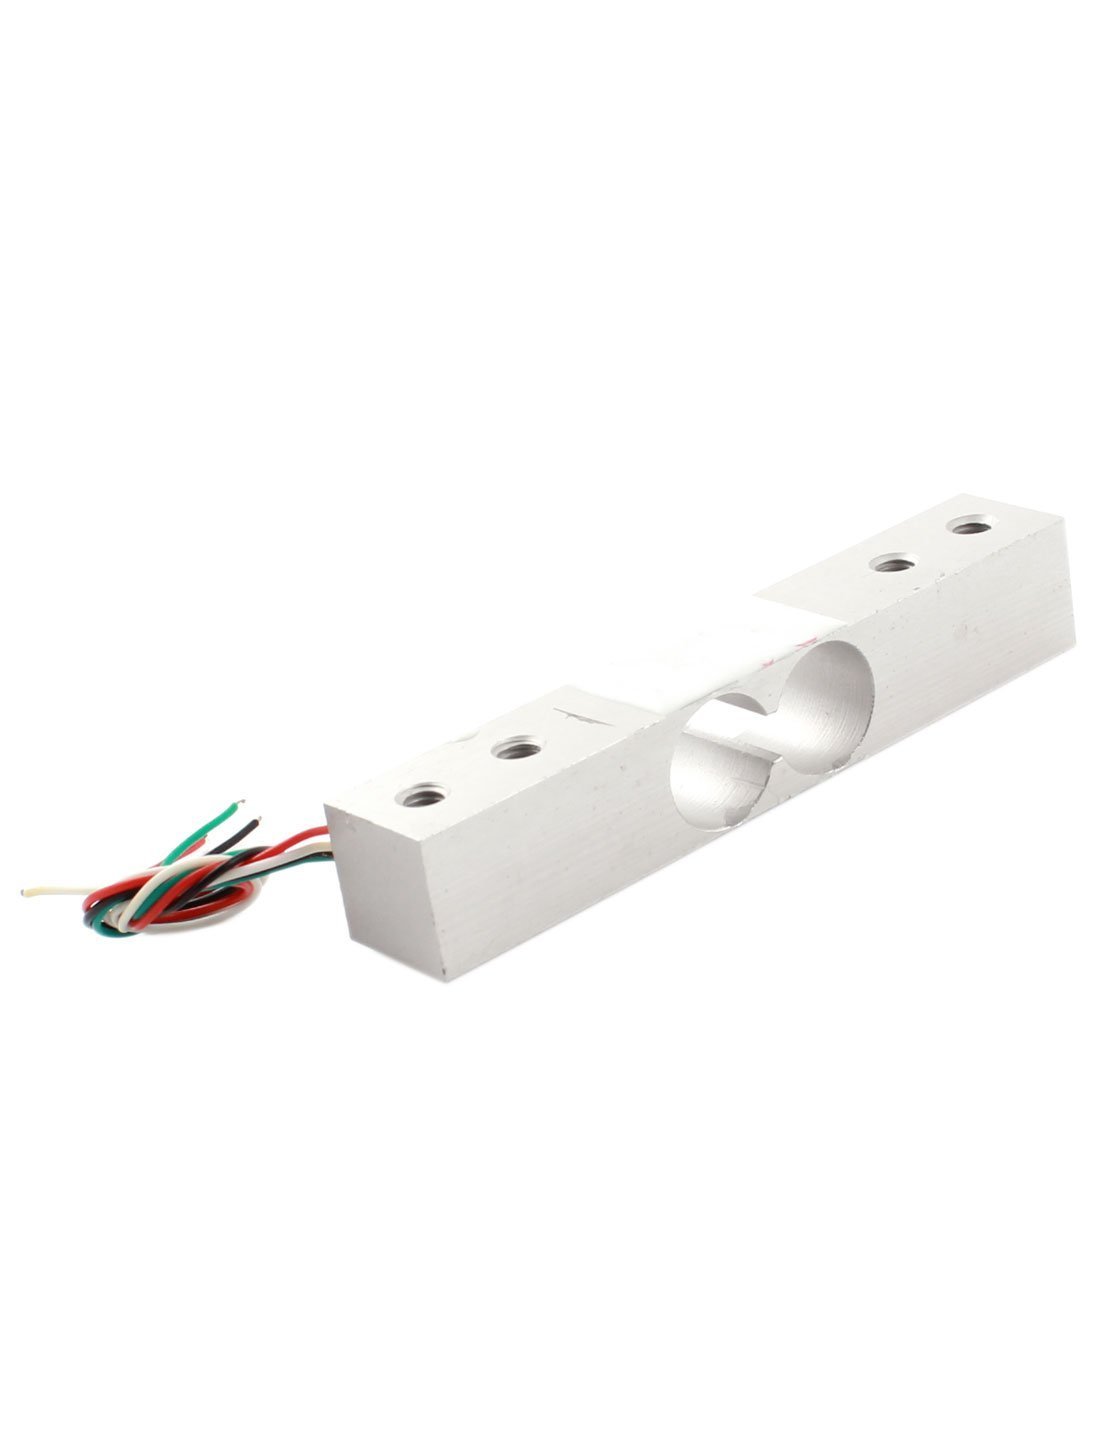 DealMux Aluminum Alloy Micro Load Cell Weighting Sensor 1 kg, 6 Length Wire